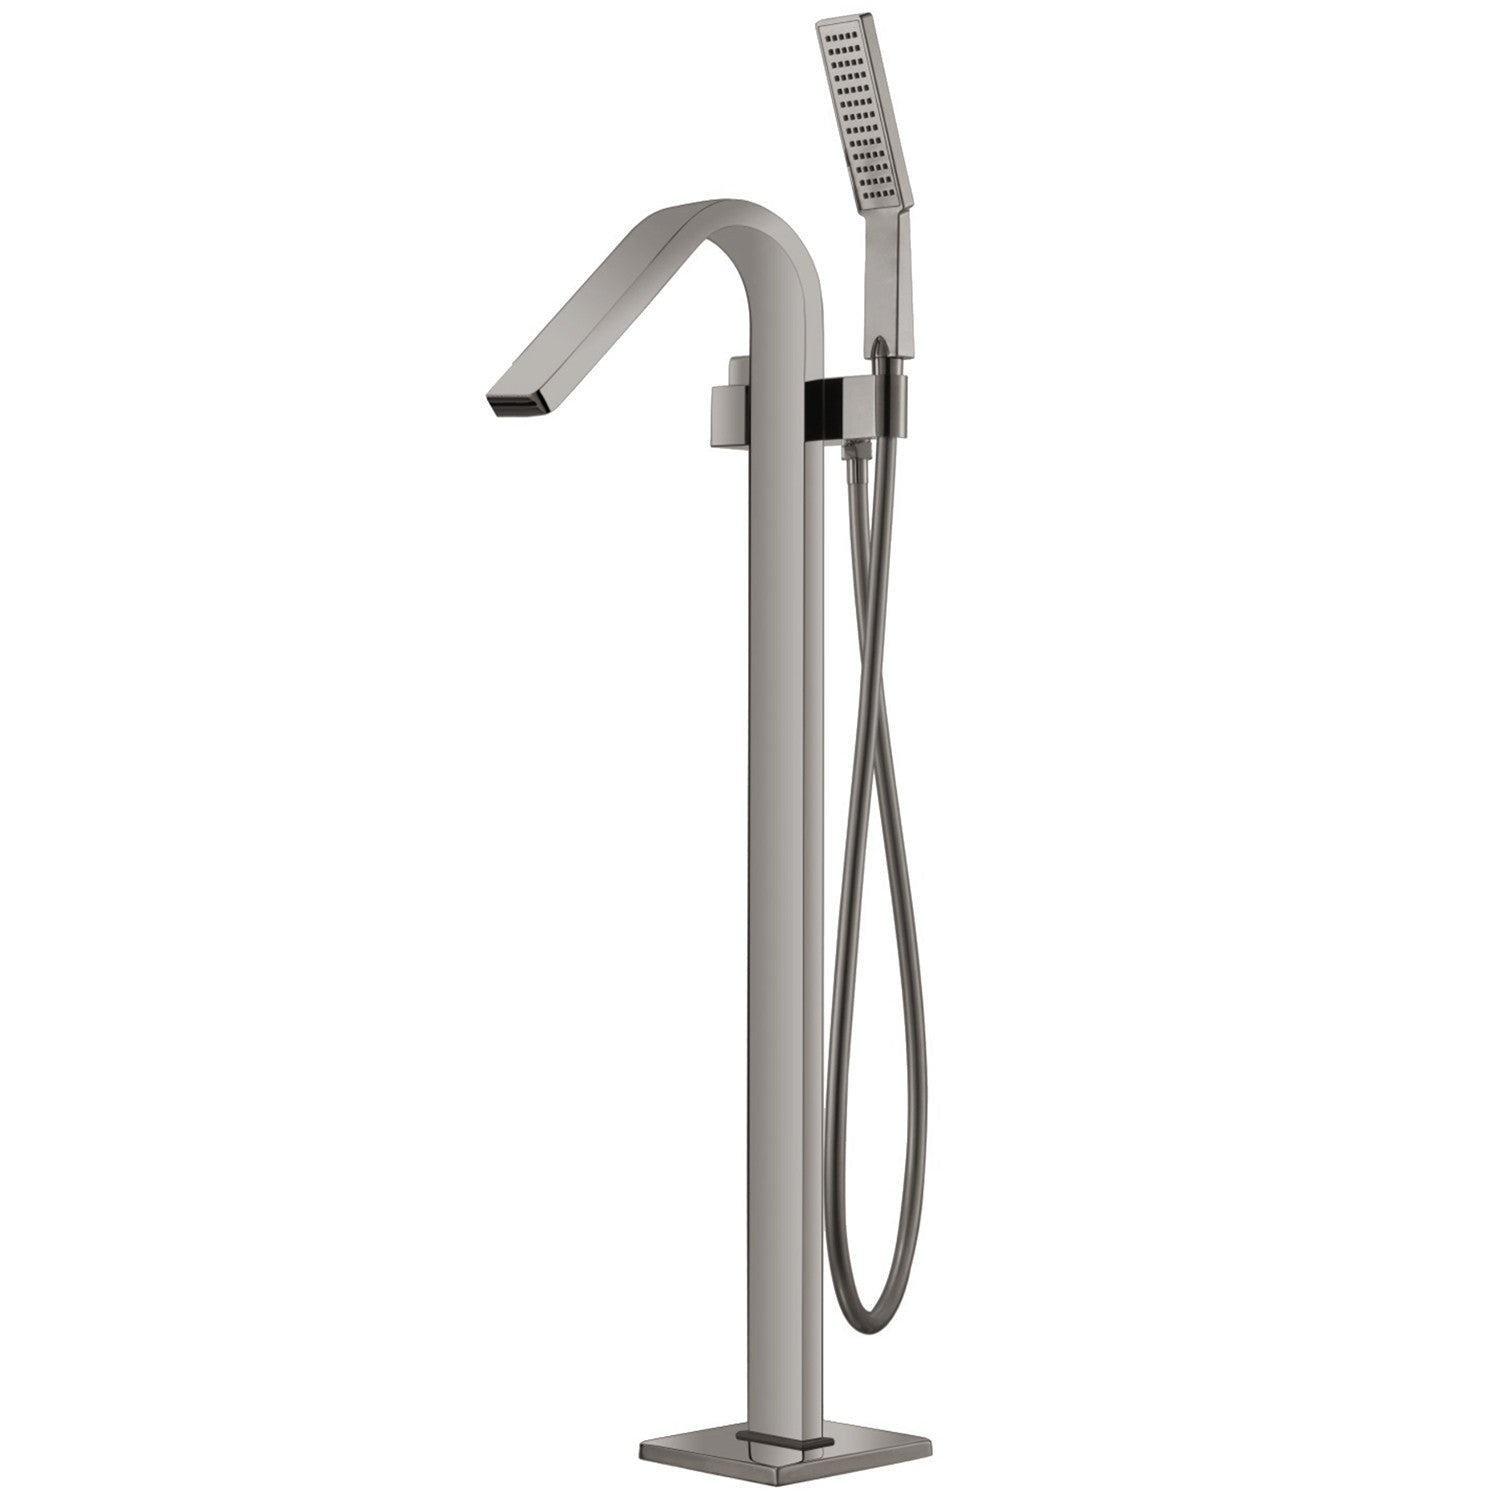 Bai 0657 Freestanding Bathtub Faucet Brushed Nickel Megabai